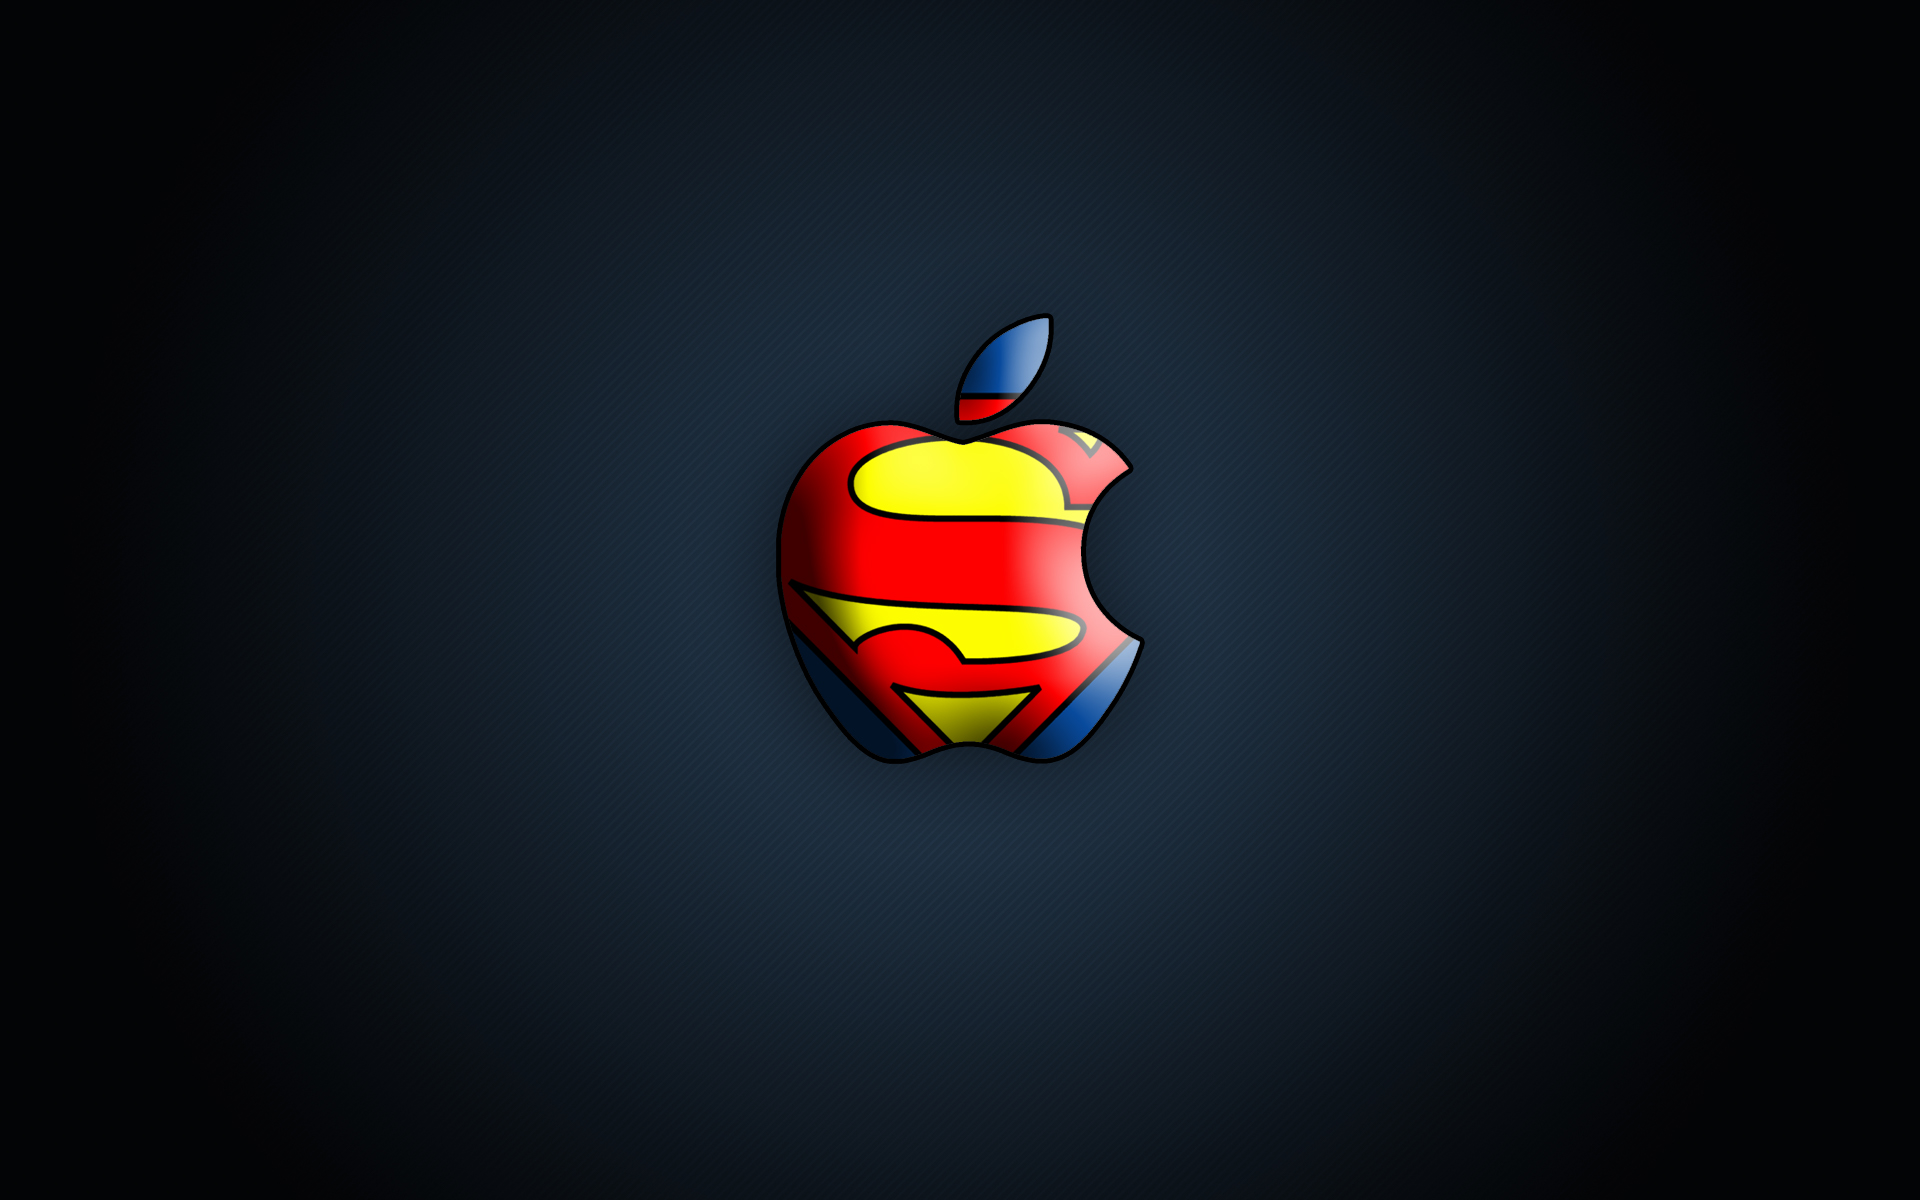 cool superman wallpaper mac images 1920x1200 1920x1200